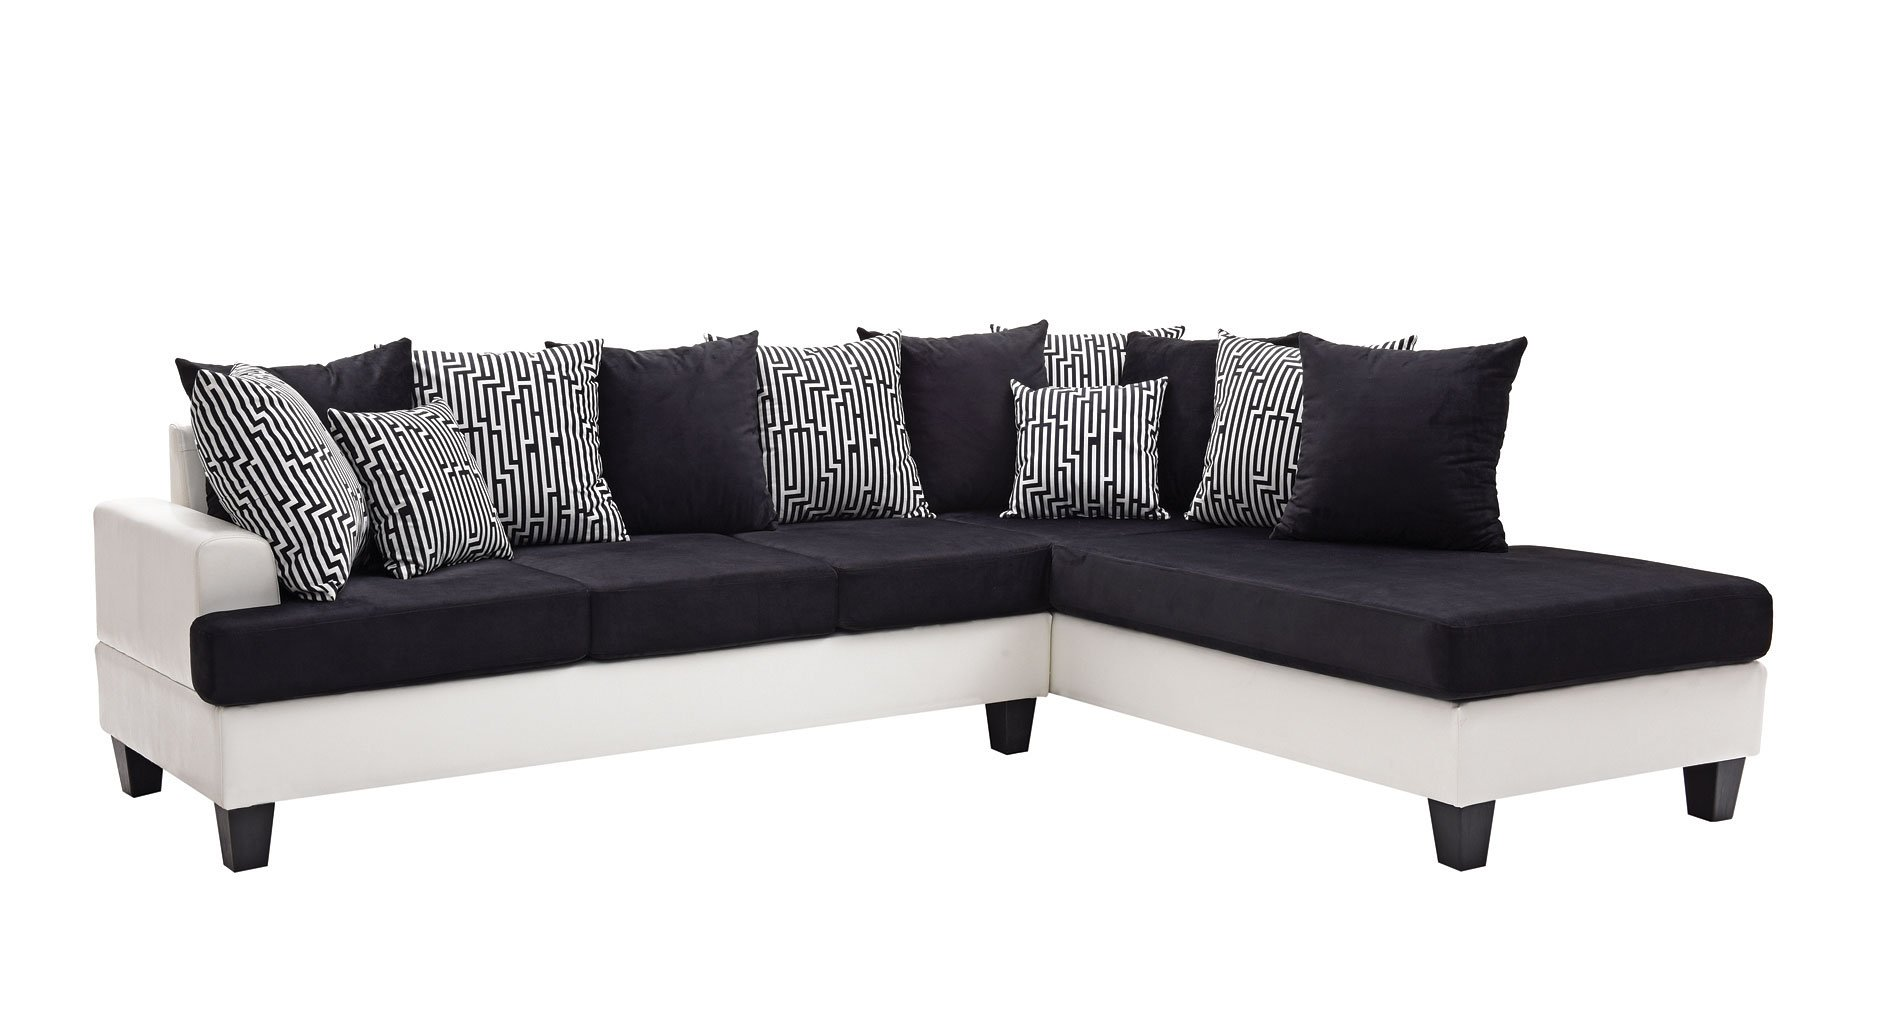 hayden sectional sofa with reversible chaise 2 seater size in inches domino glory furniture